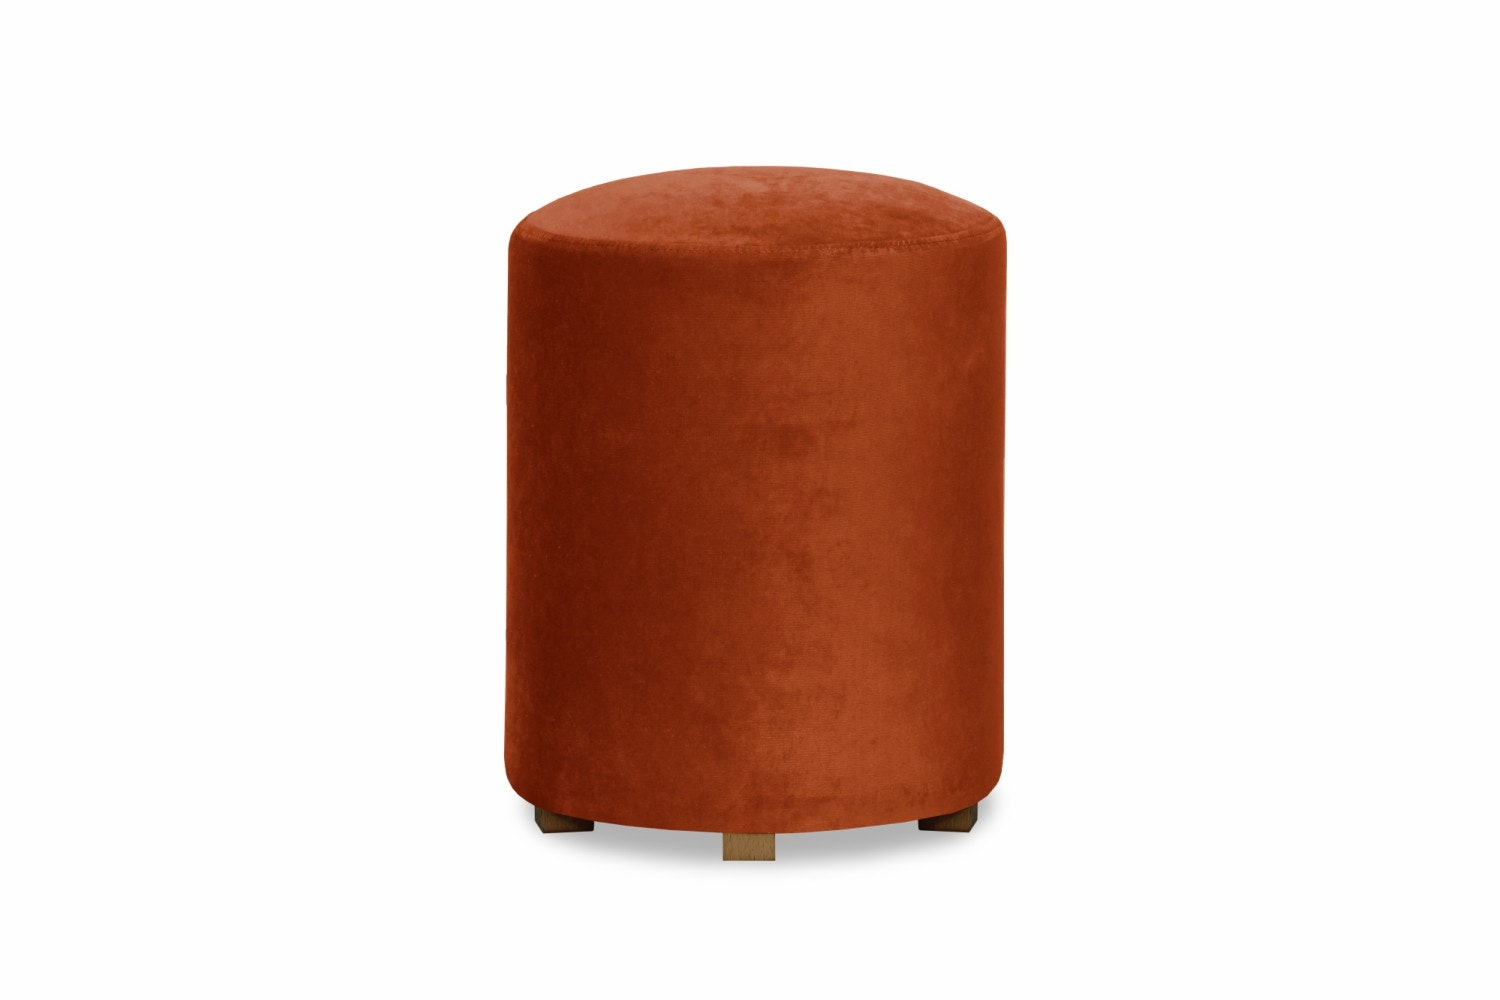 Pufa Bedroom Round Stool | Orange